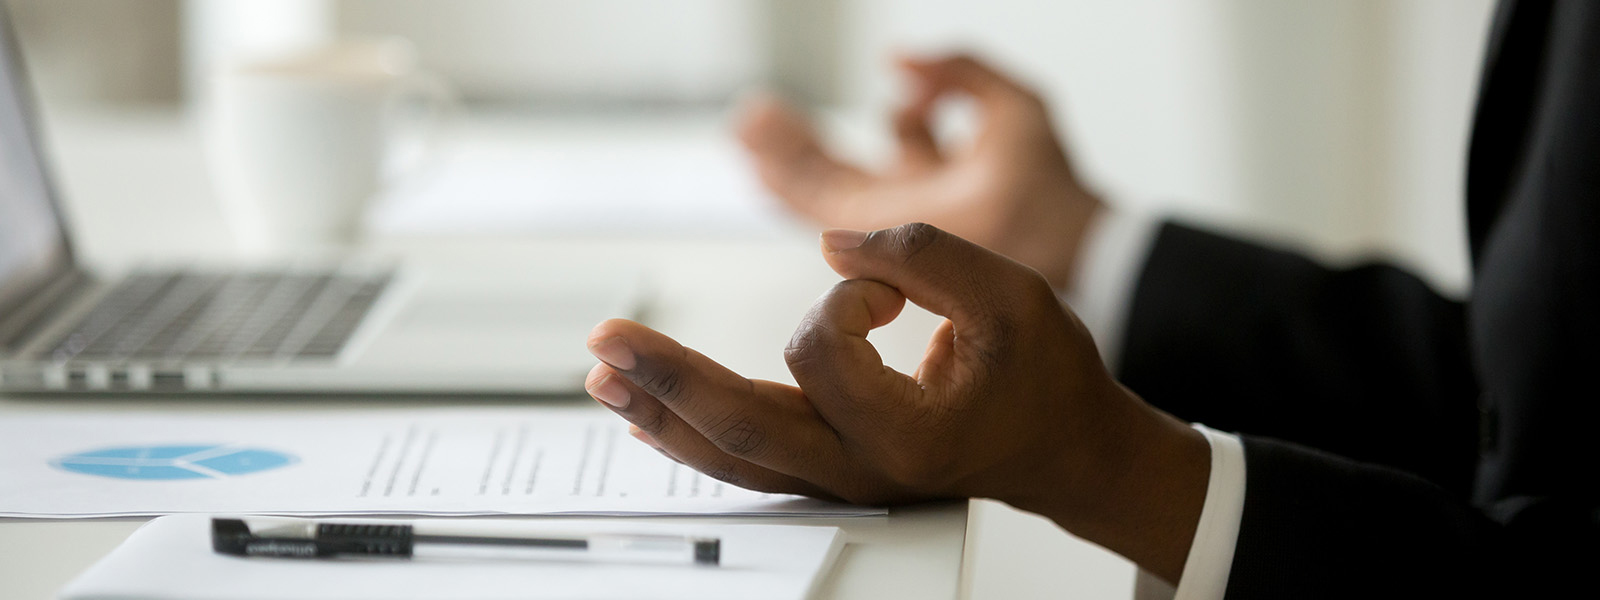 Image of hands meditating while working from desk